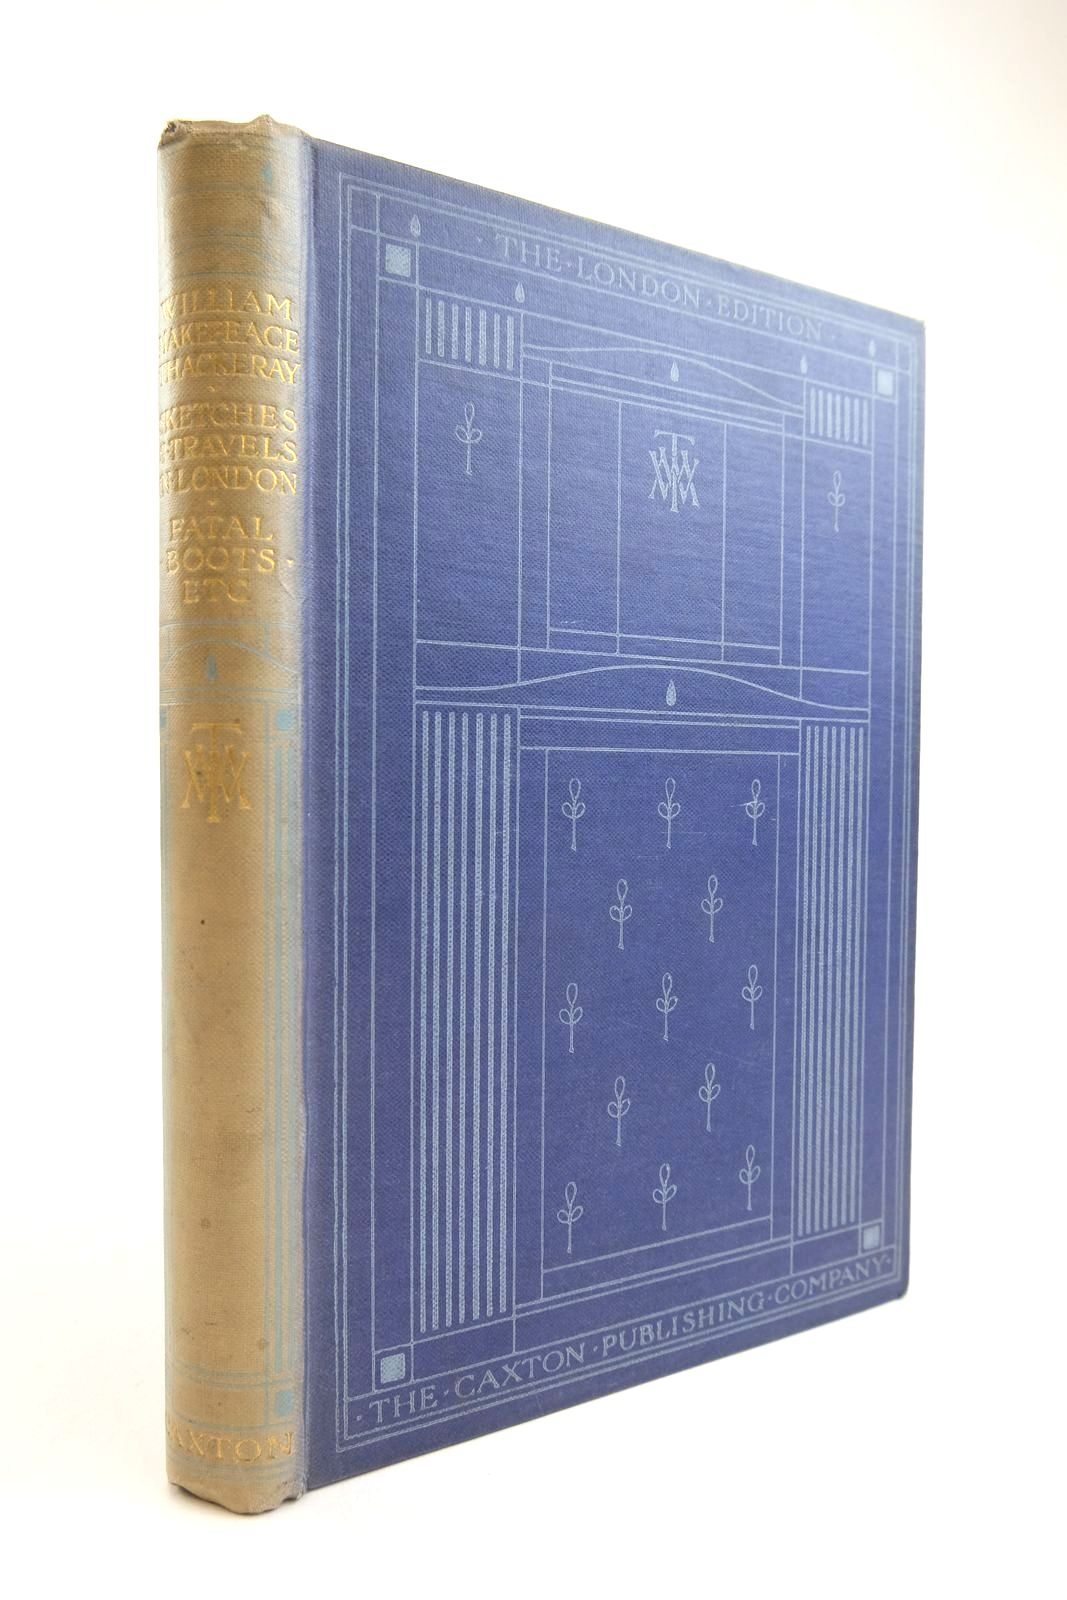 Photo of SKETCHES AND TRAVELS IN LONDON; THE FATAL BOOTS; LITTLE TRAVELS AND ROADSIDE SKETCHES written by Thackeray, William Makepeace published by The Caxton Publishing Company (STOCK CODE: 2134218)  for sale by Stella & Rose's Books